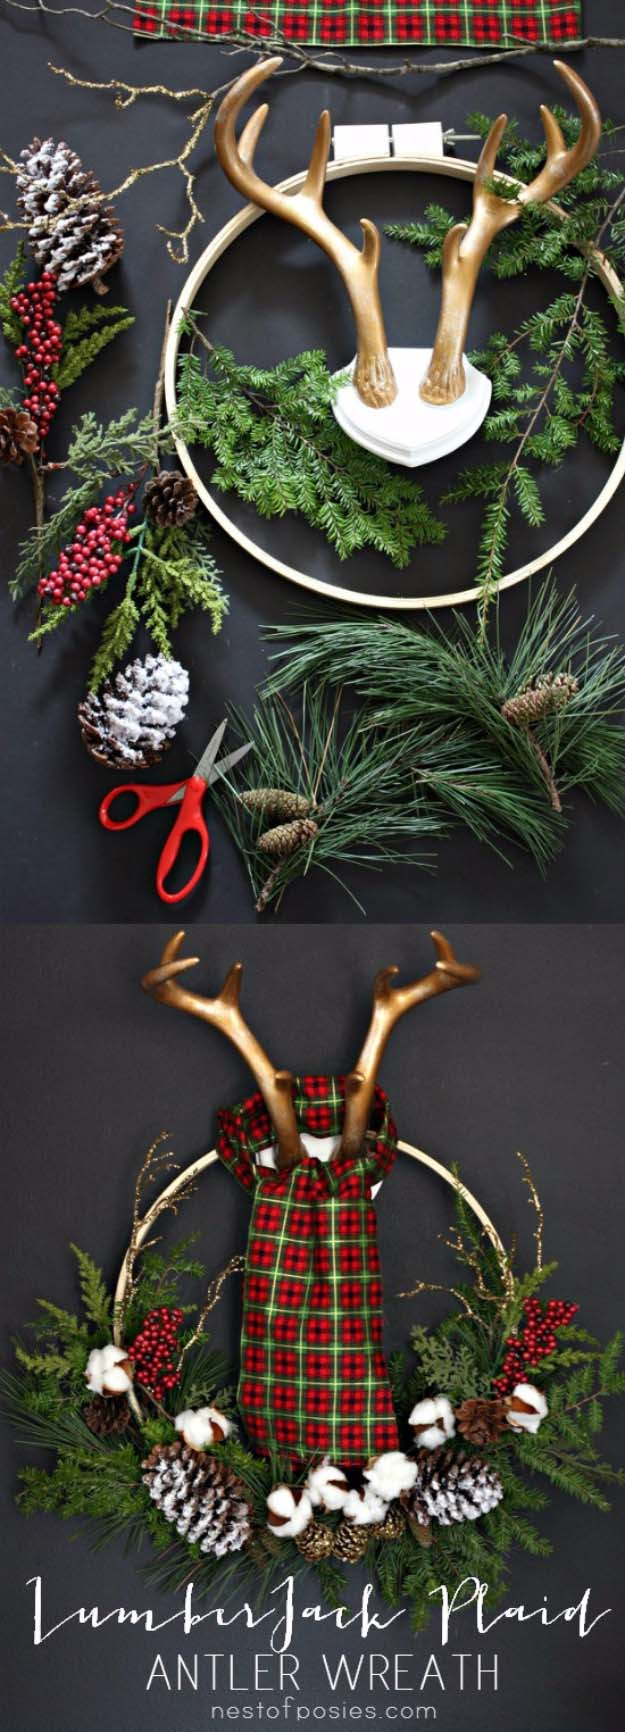 DIY Holiday Wreaths Make Awesome Homemade Christmas Decorations for Your Front Door | Cool Crafts and DIY Projects by DIY JOY | Lumberjack Plaid Antler Wreath #diy